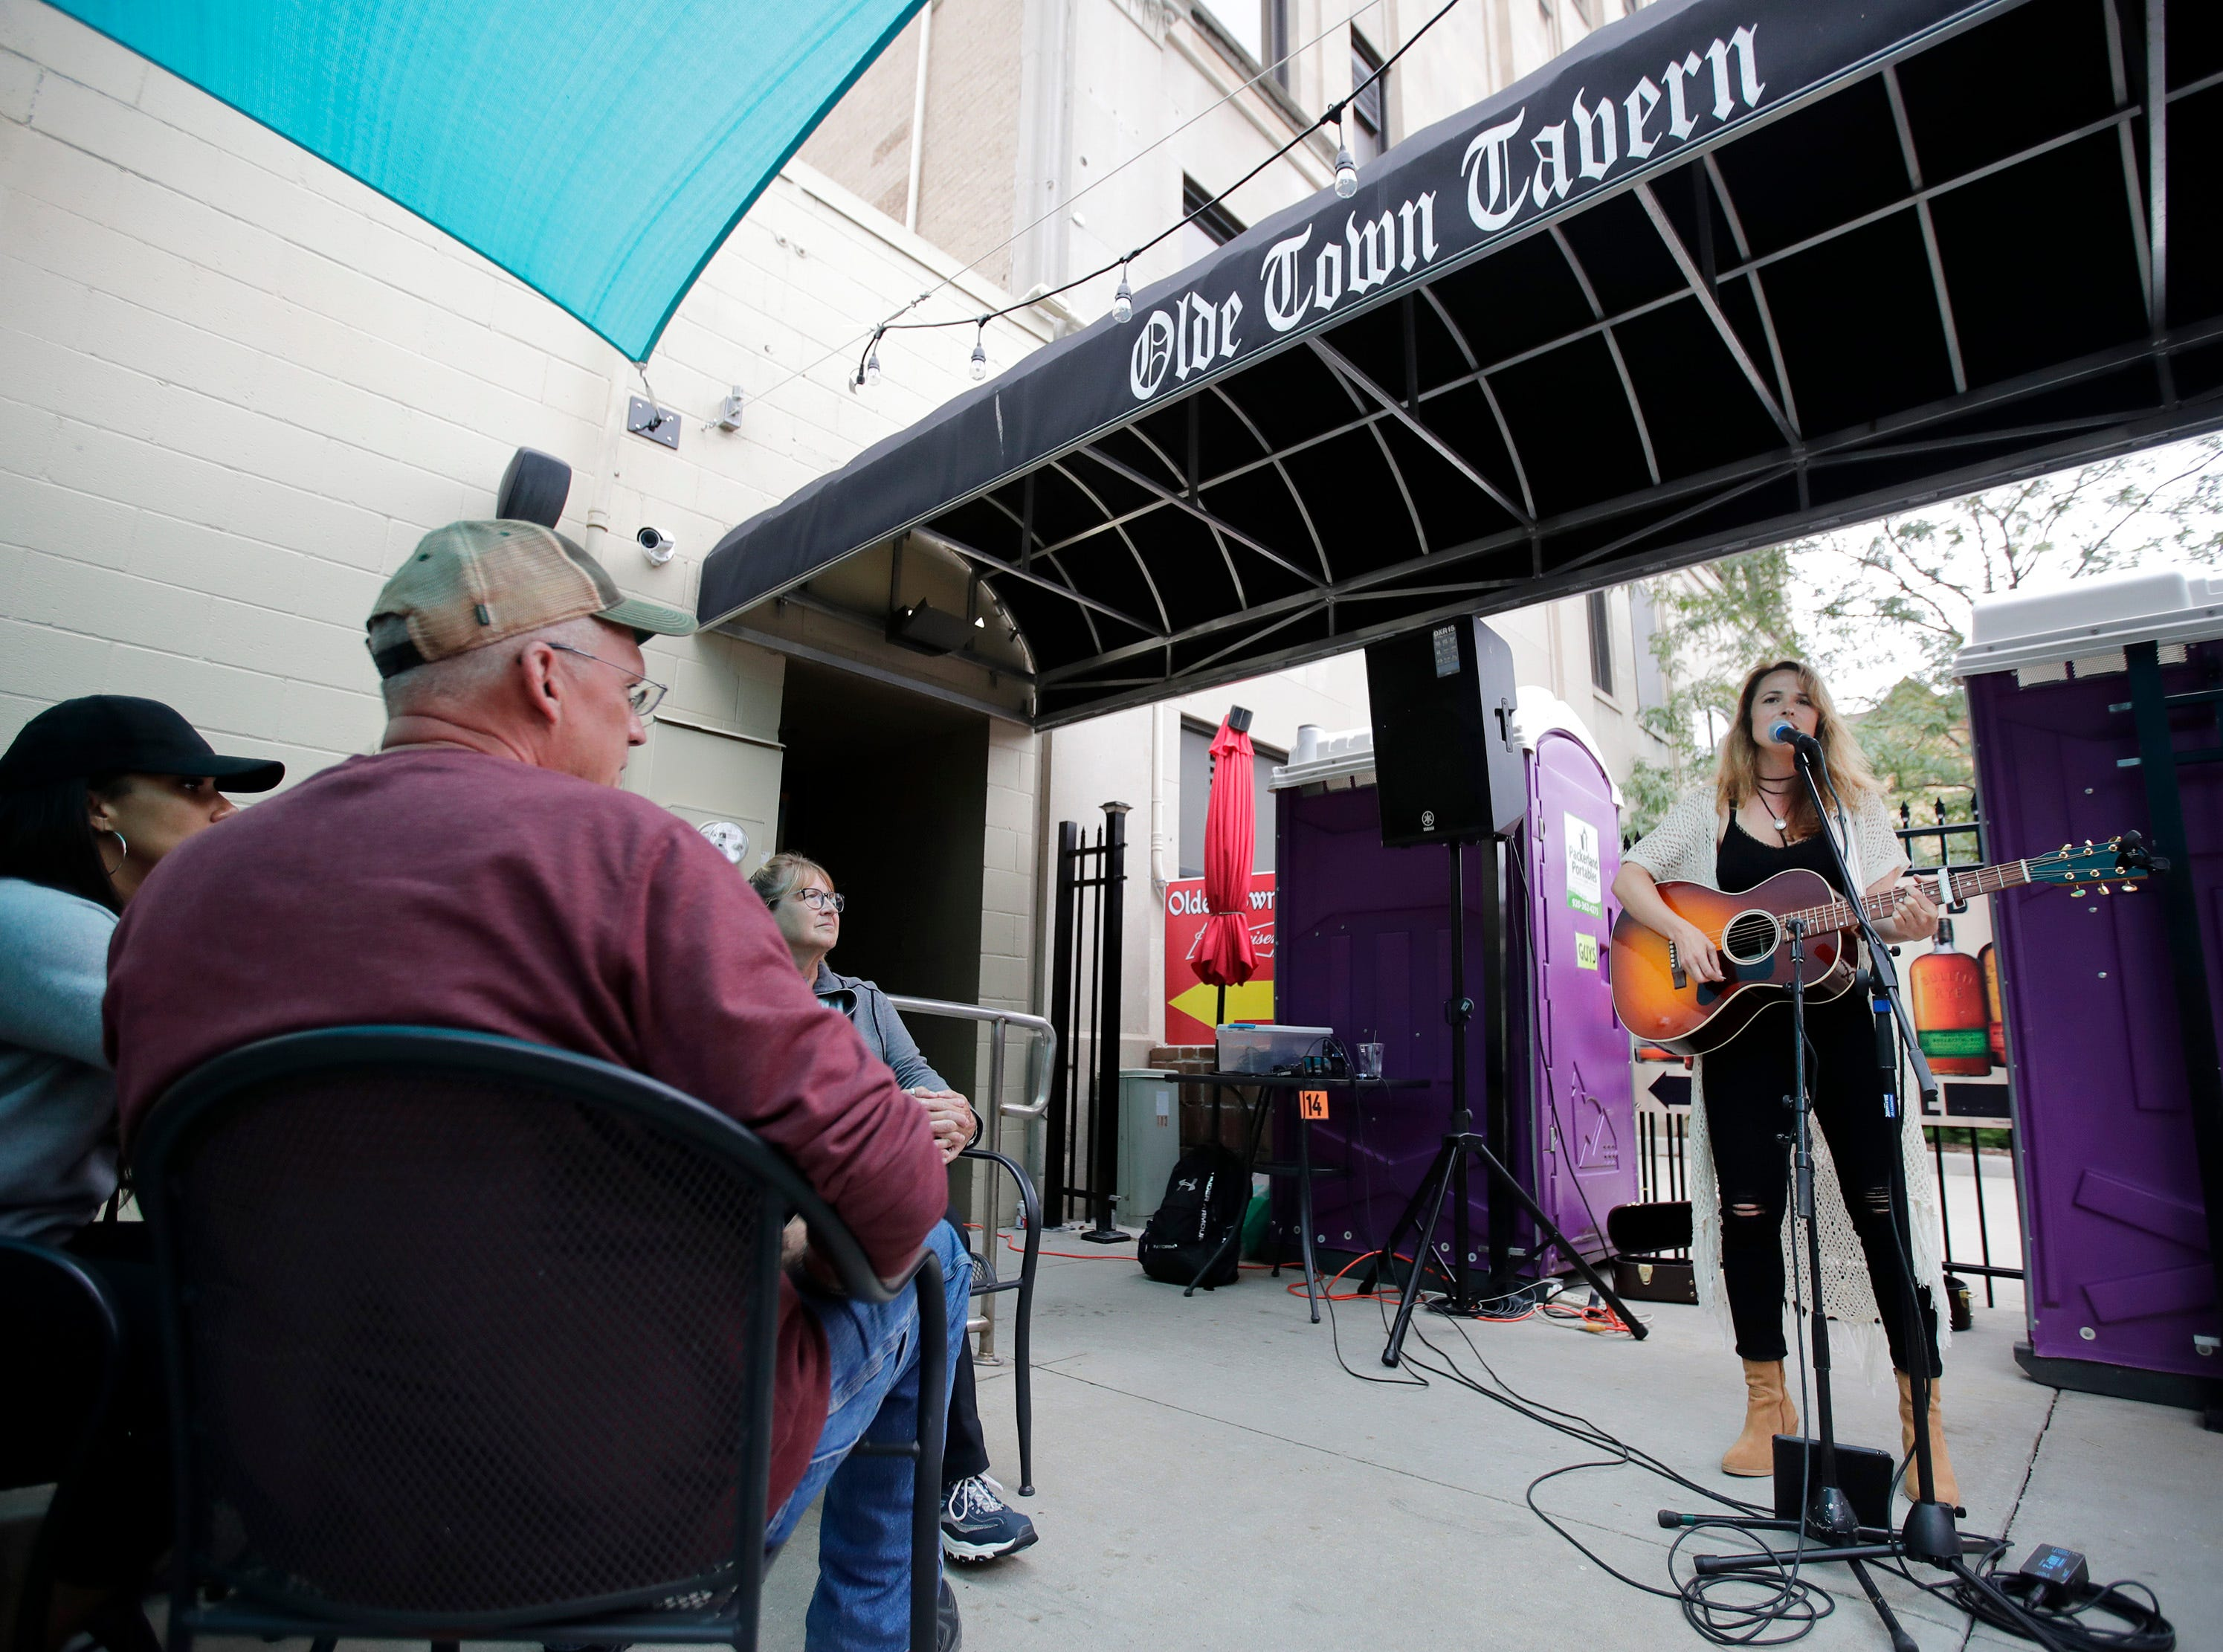 Mira Goto performs on the Bazil's Pub Patio during the first day of Mile of Music Thursday, Aug. 2, 2018, in Appleton, Wis.Danny Damiani/USA TODAY NETWORK-Wisconsin